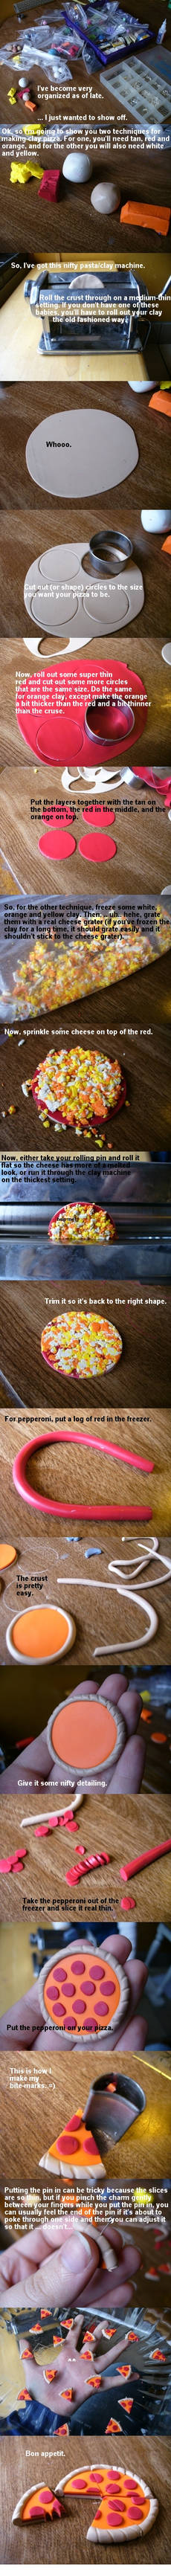 Pizza Polymer Clay Tutorial